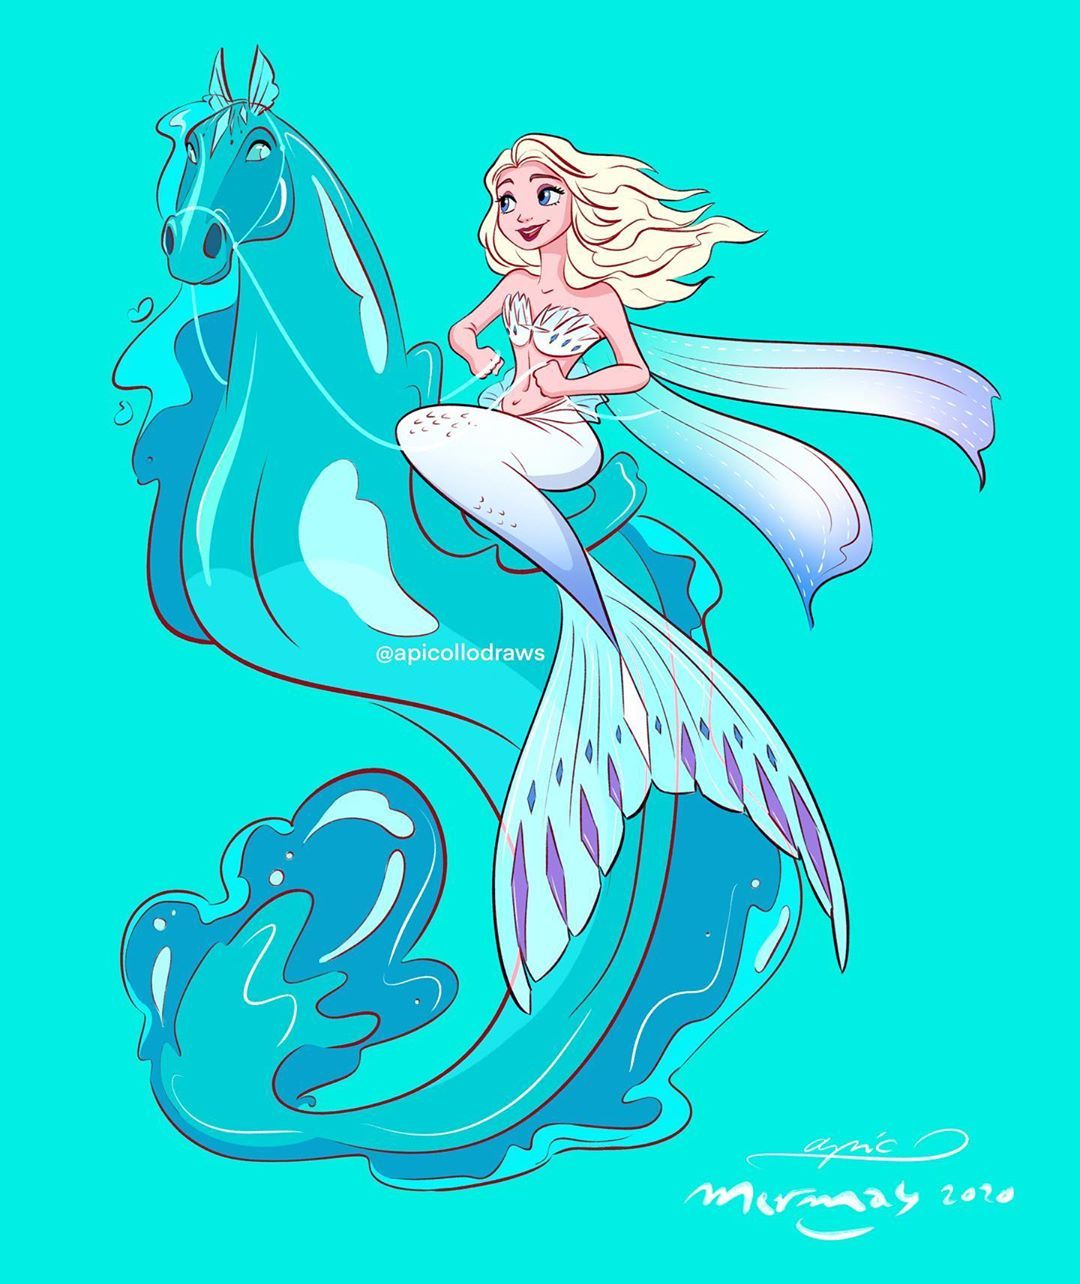 When Disney princesses trade in their legs for a tail • GEEKSPIN